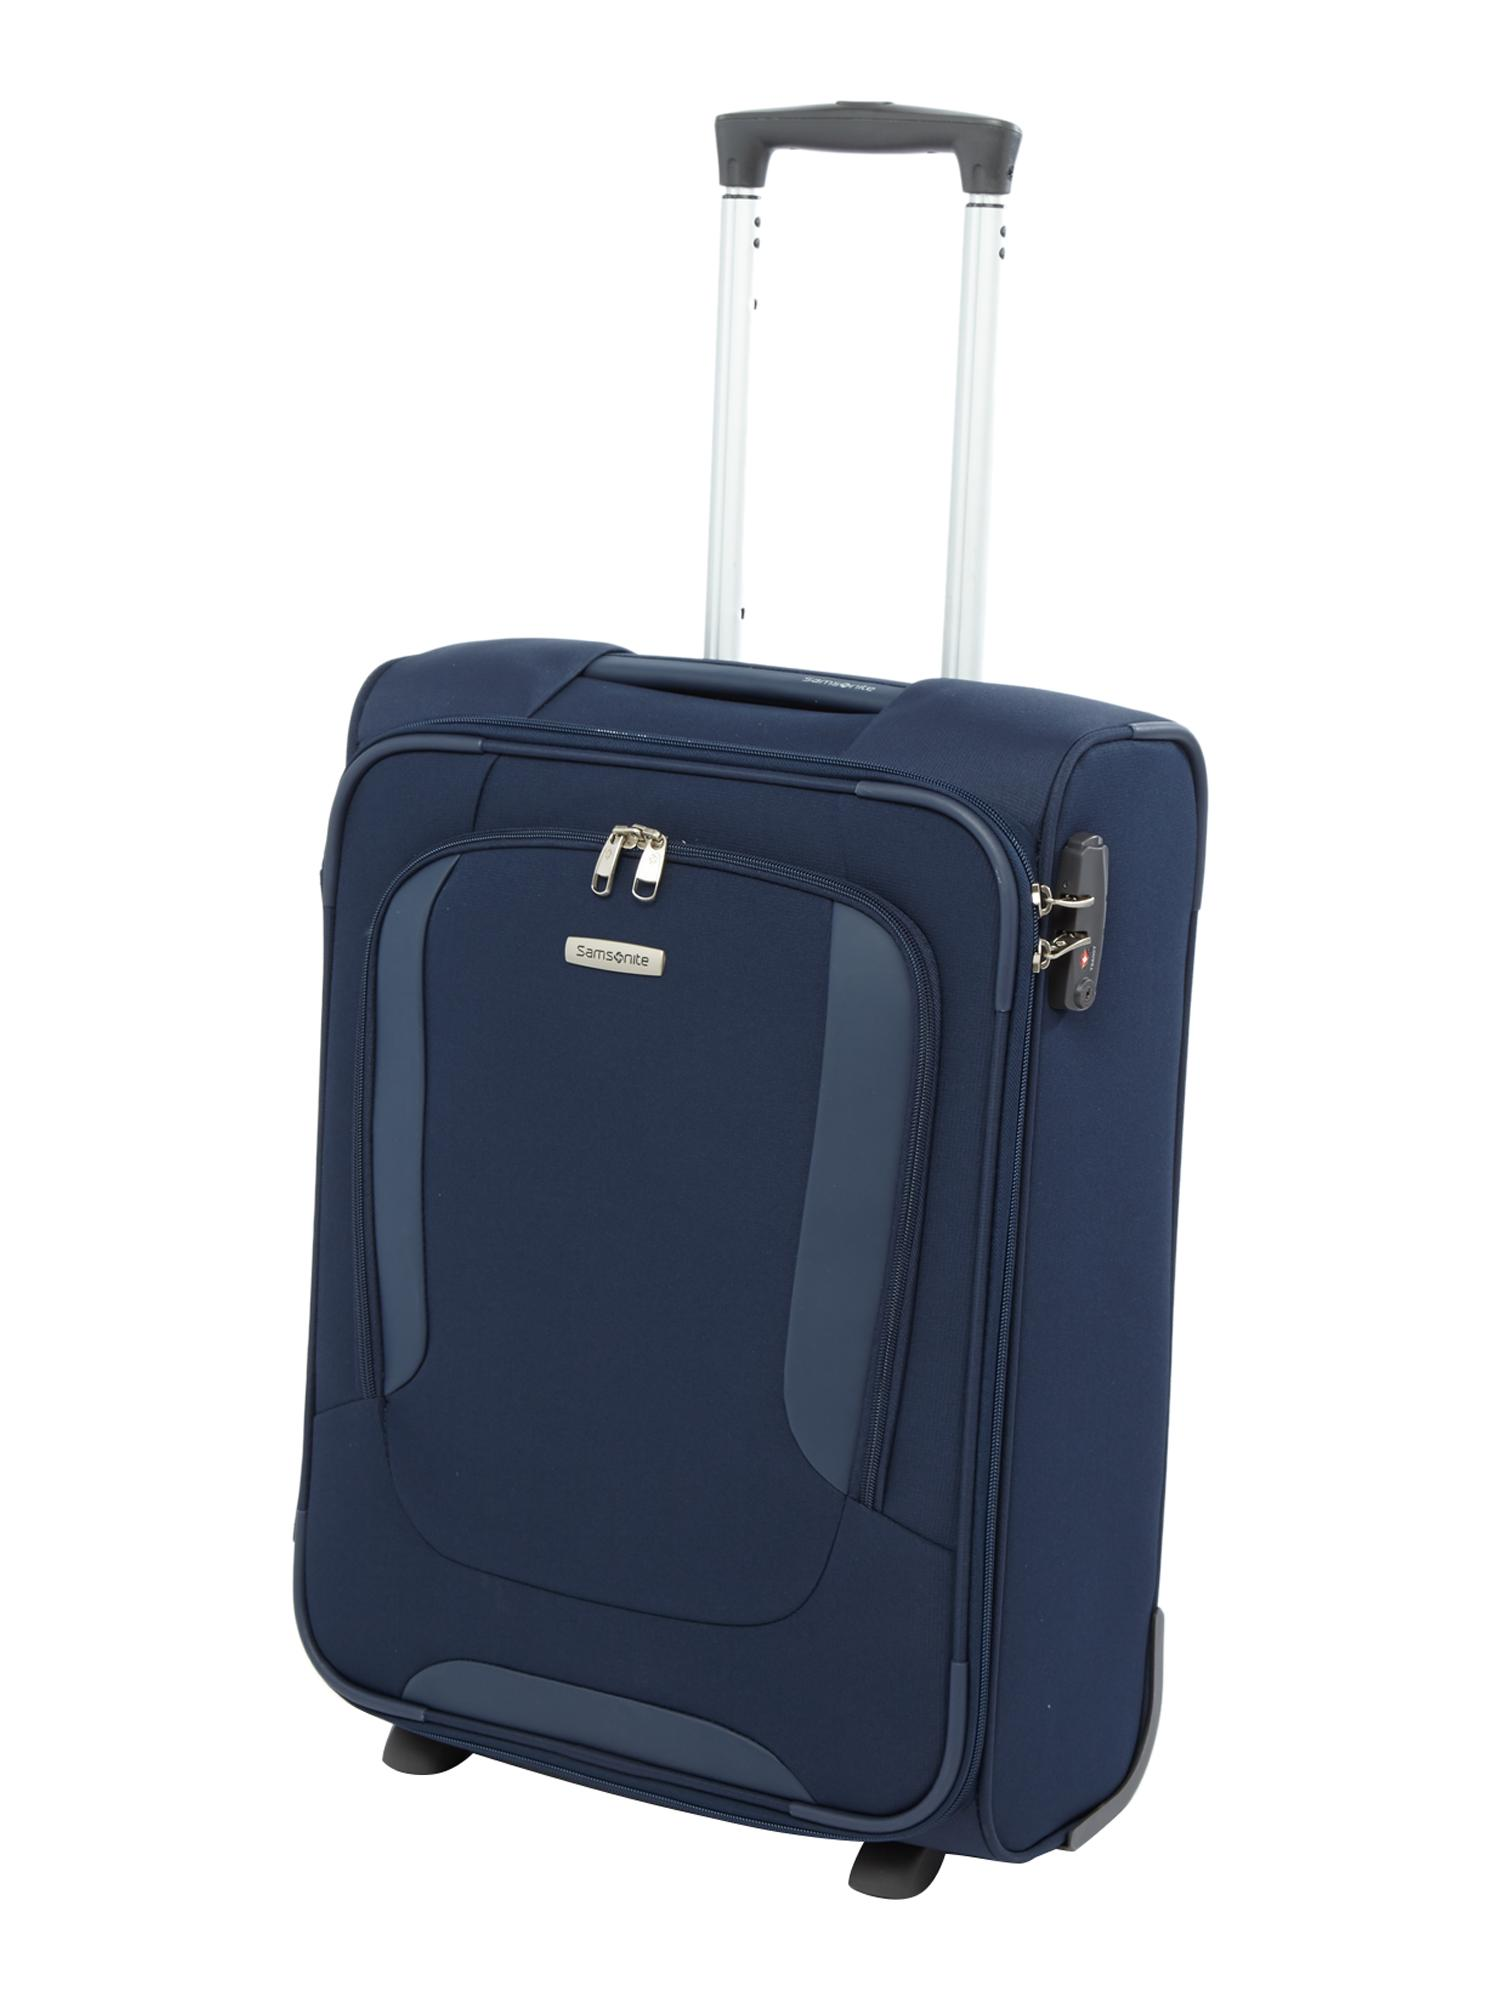 Suitcase With Drawers Samsonite Arnavon Blue 2 Wheel Soft Cabin Suitcase House Of Fraser